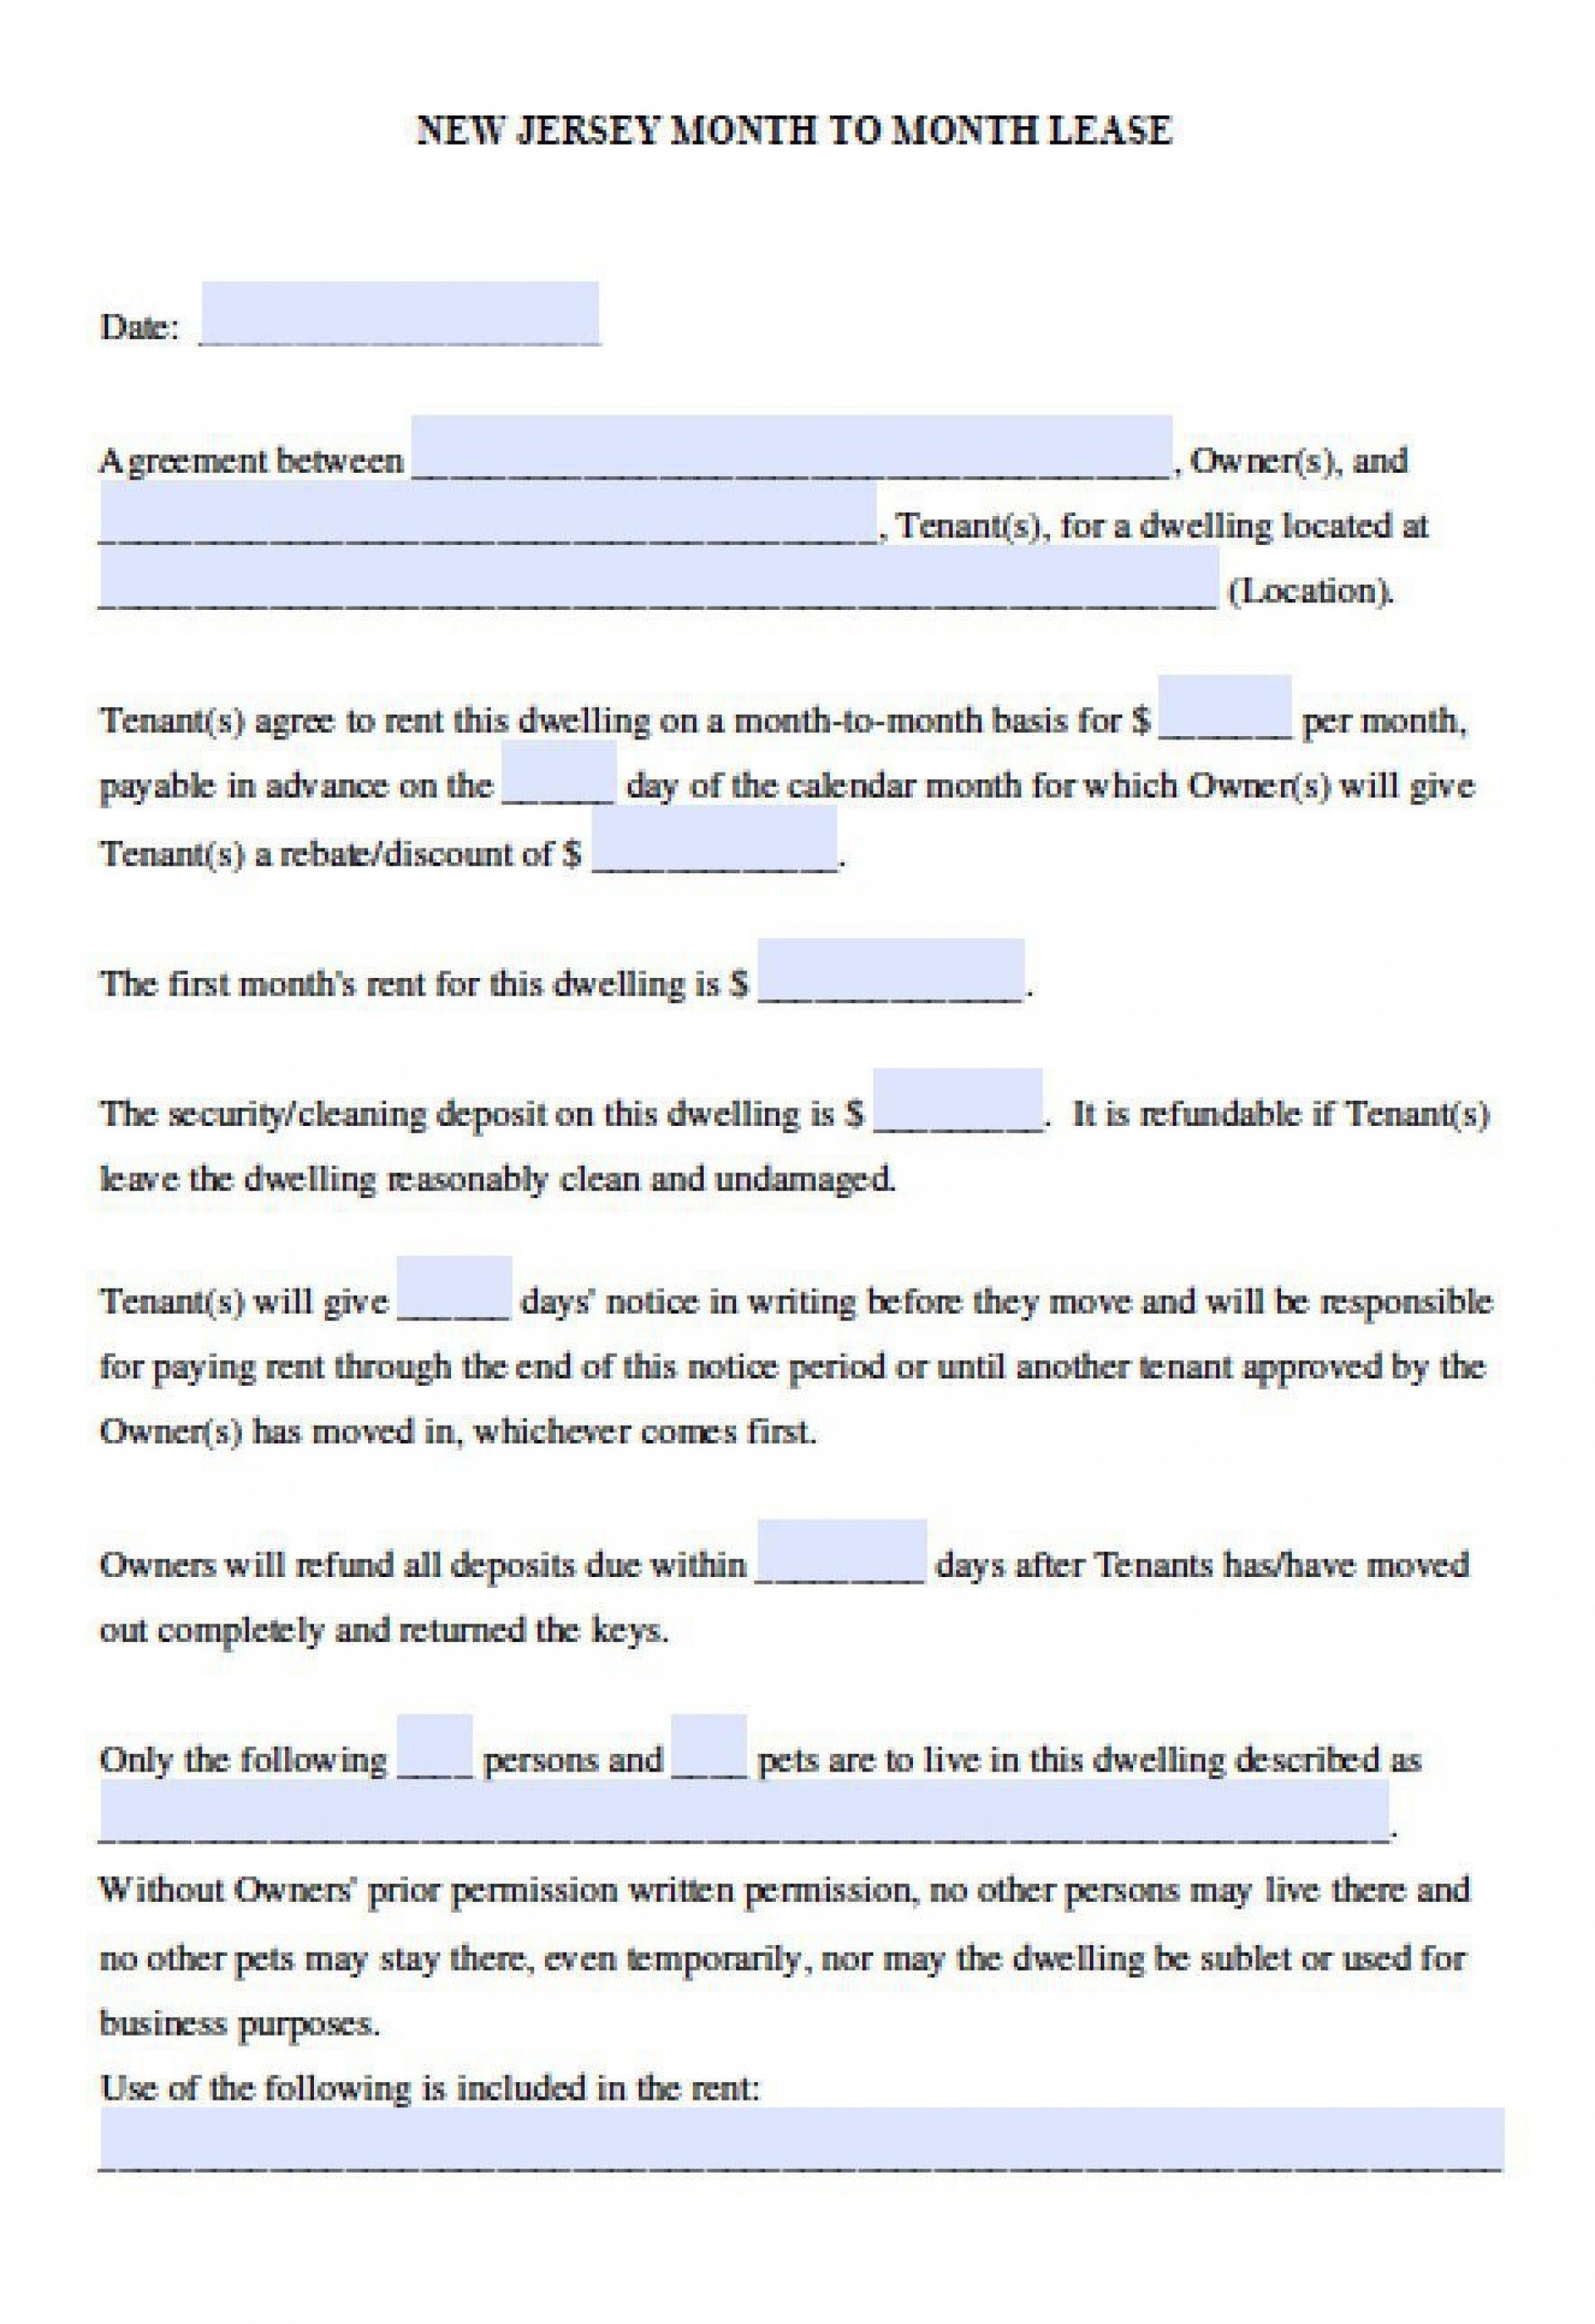 006 Amazing Apartment Lease Agreement Form Nj High Resolution 1920